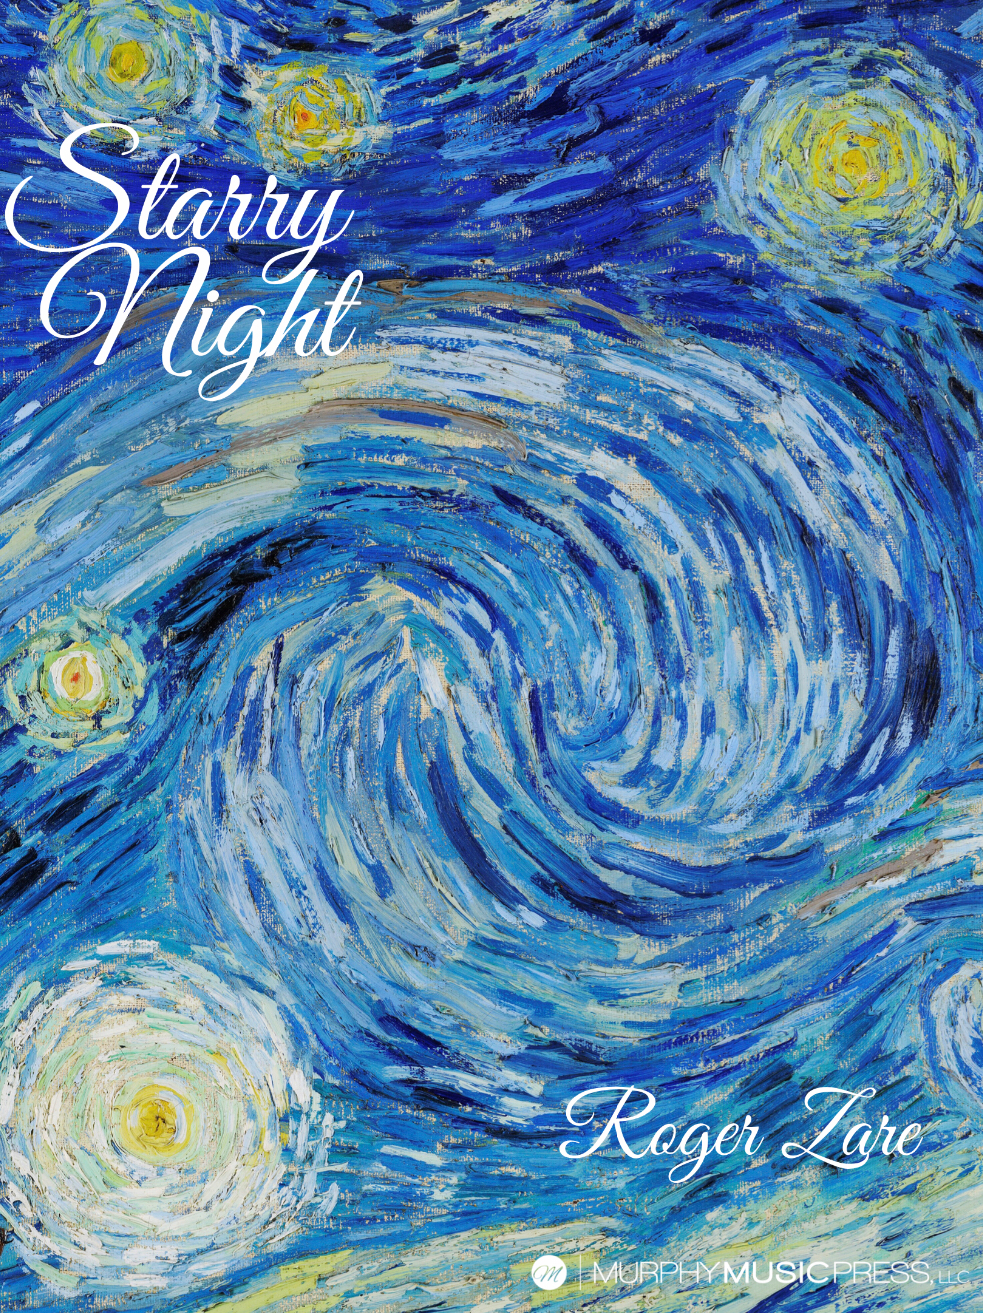 Starry Night by Roger Zare